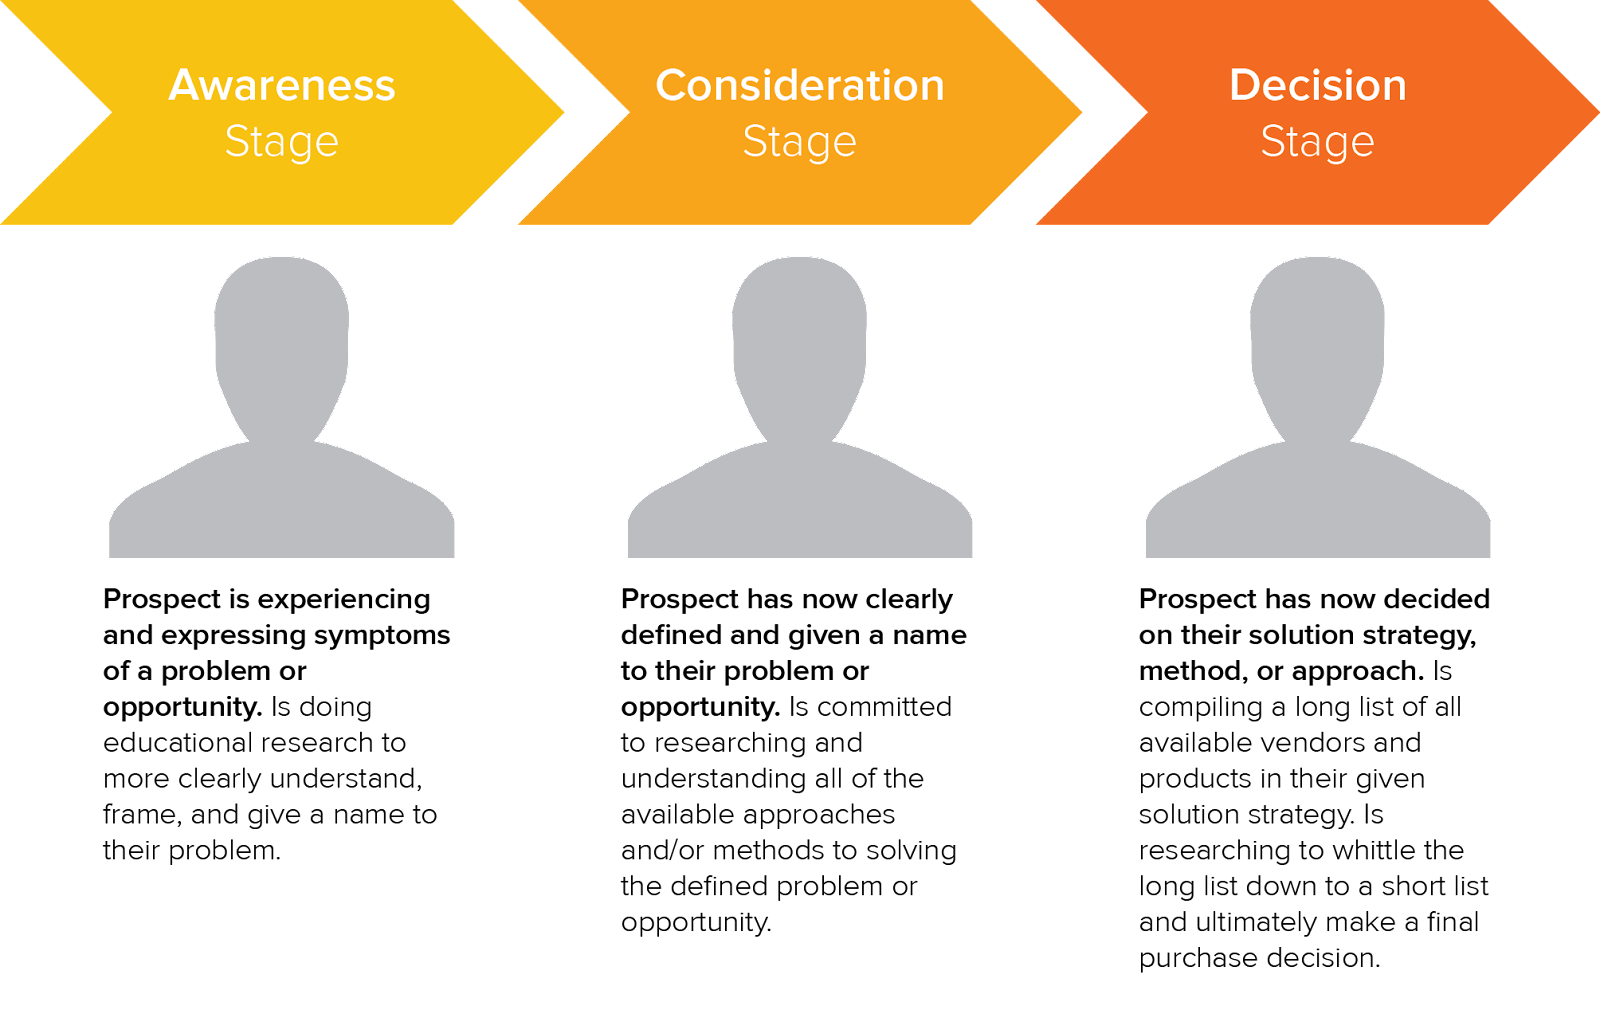 Buyer's journey map showing awareness, consideration, and decision stage.